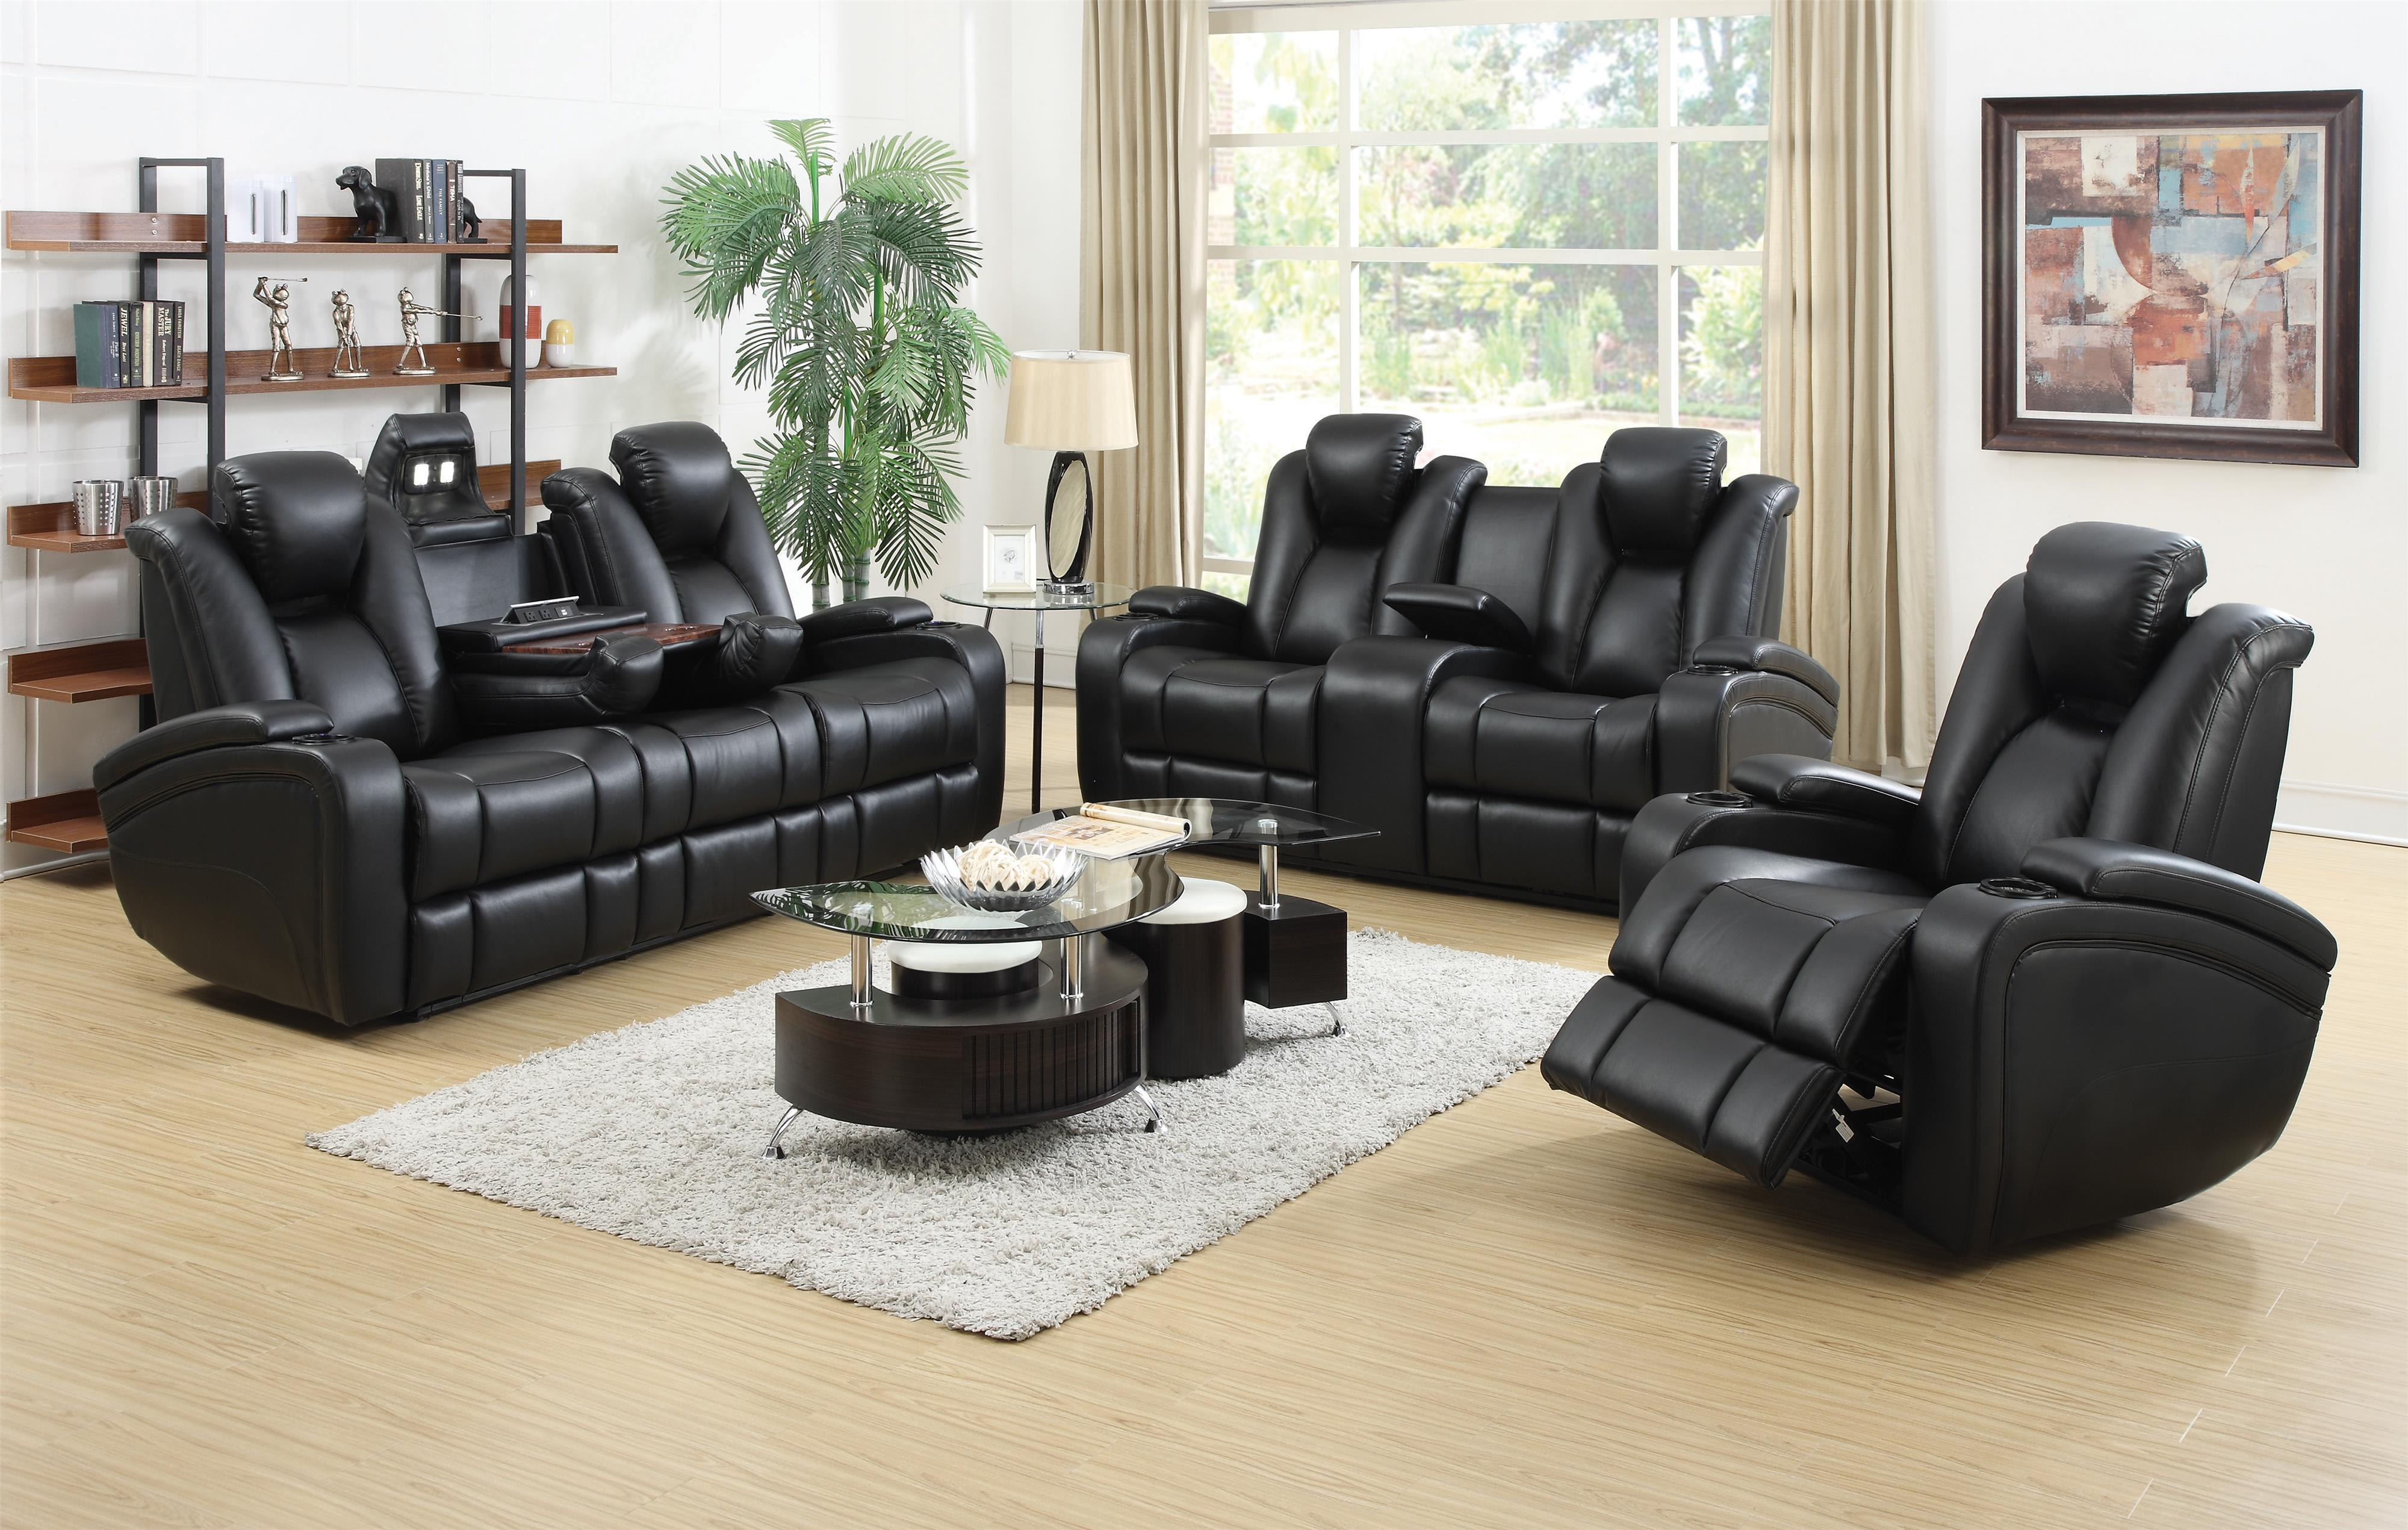 Delange Reclining Living Room Group by Coaster at Northeast Factory Direct